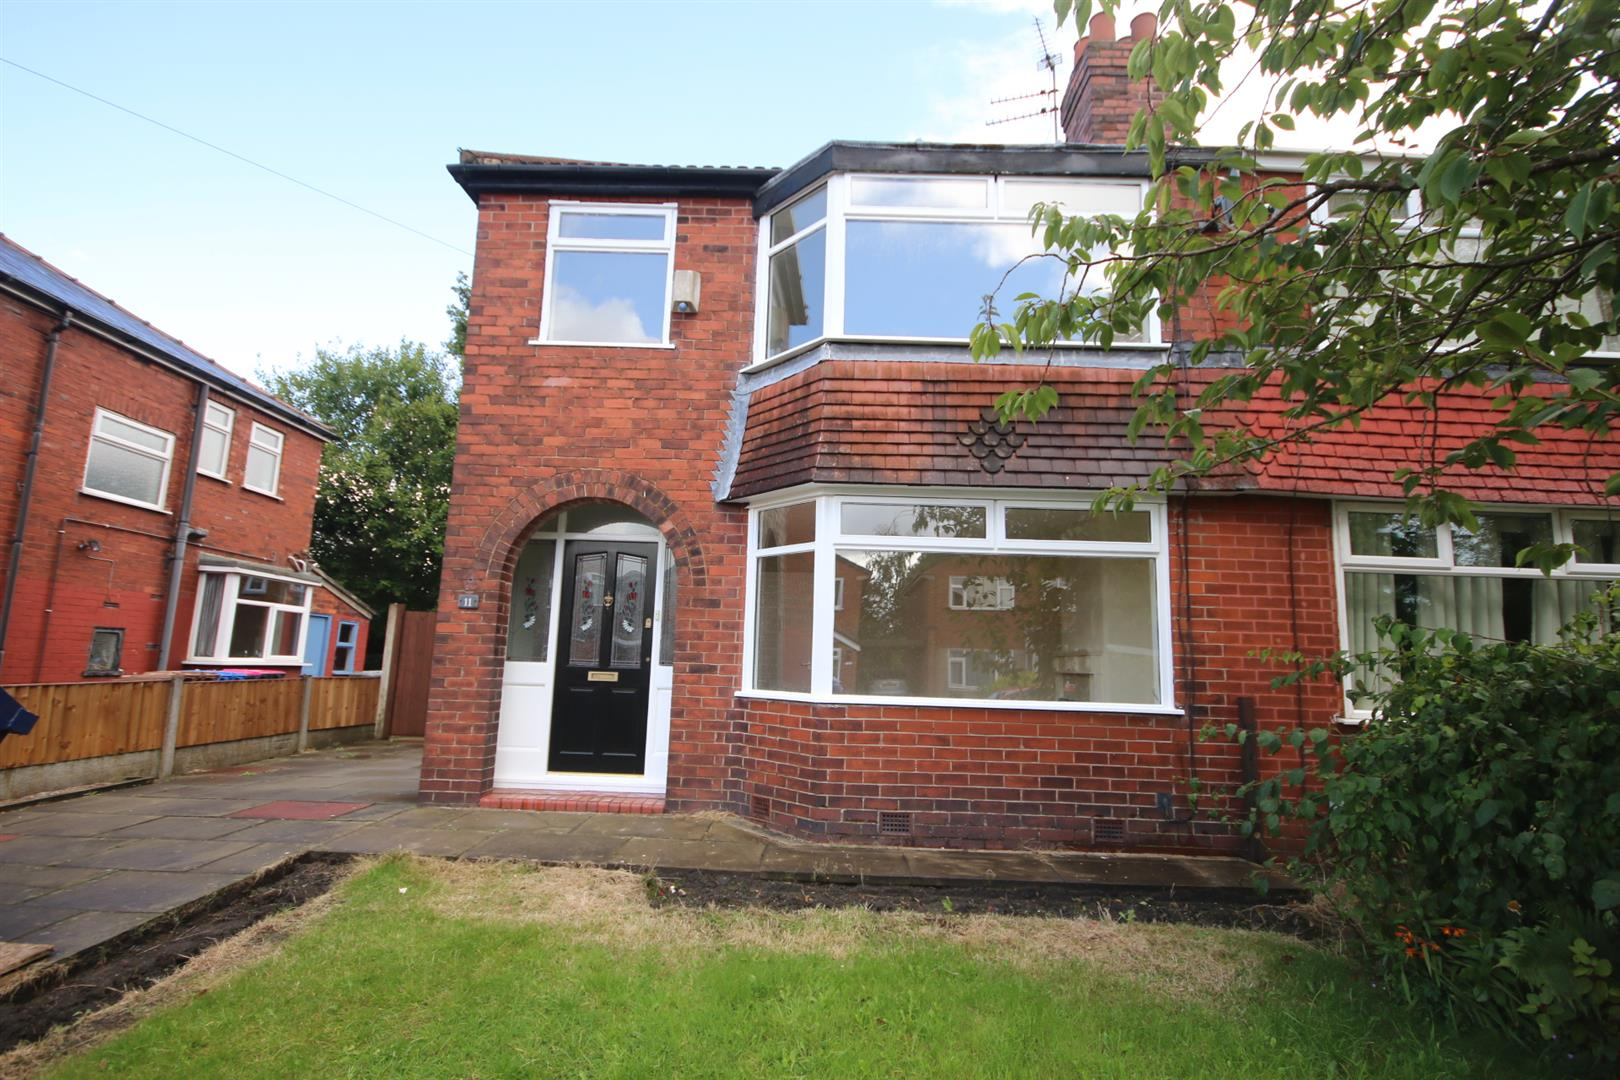 3 Bedroom House - Semi-Detached To Let